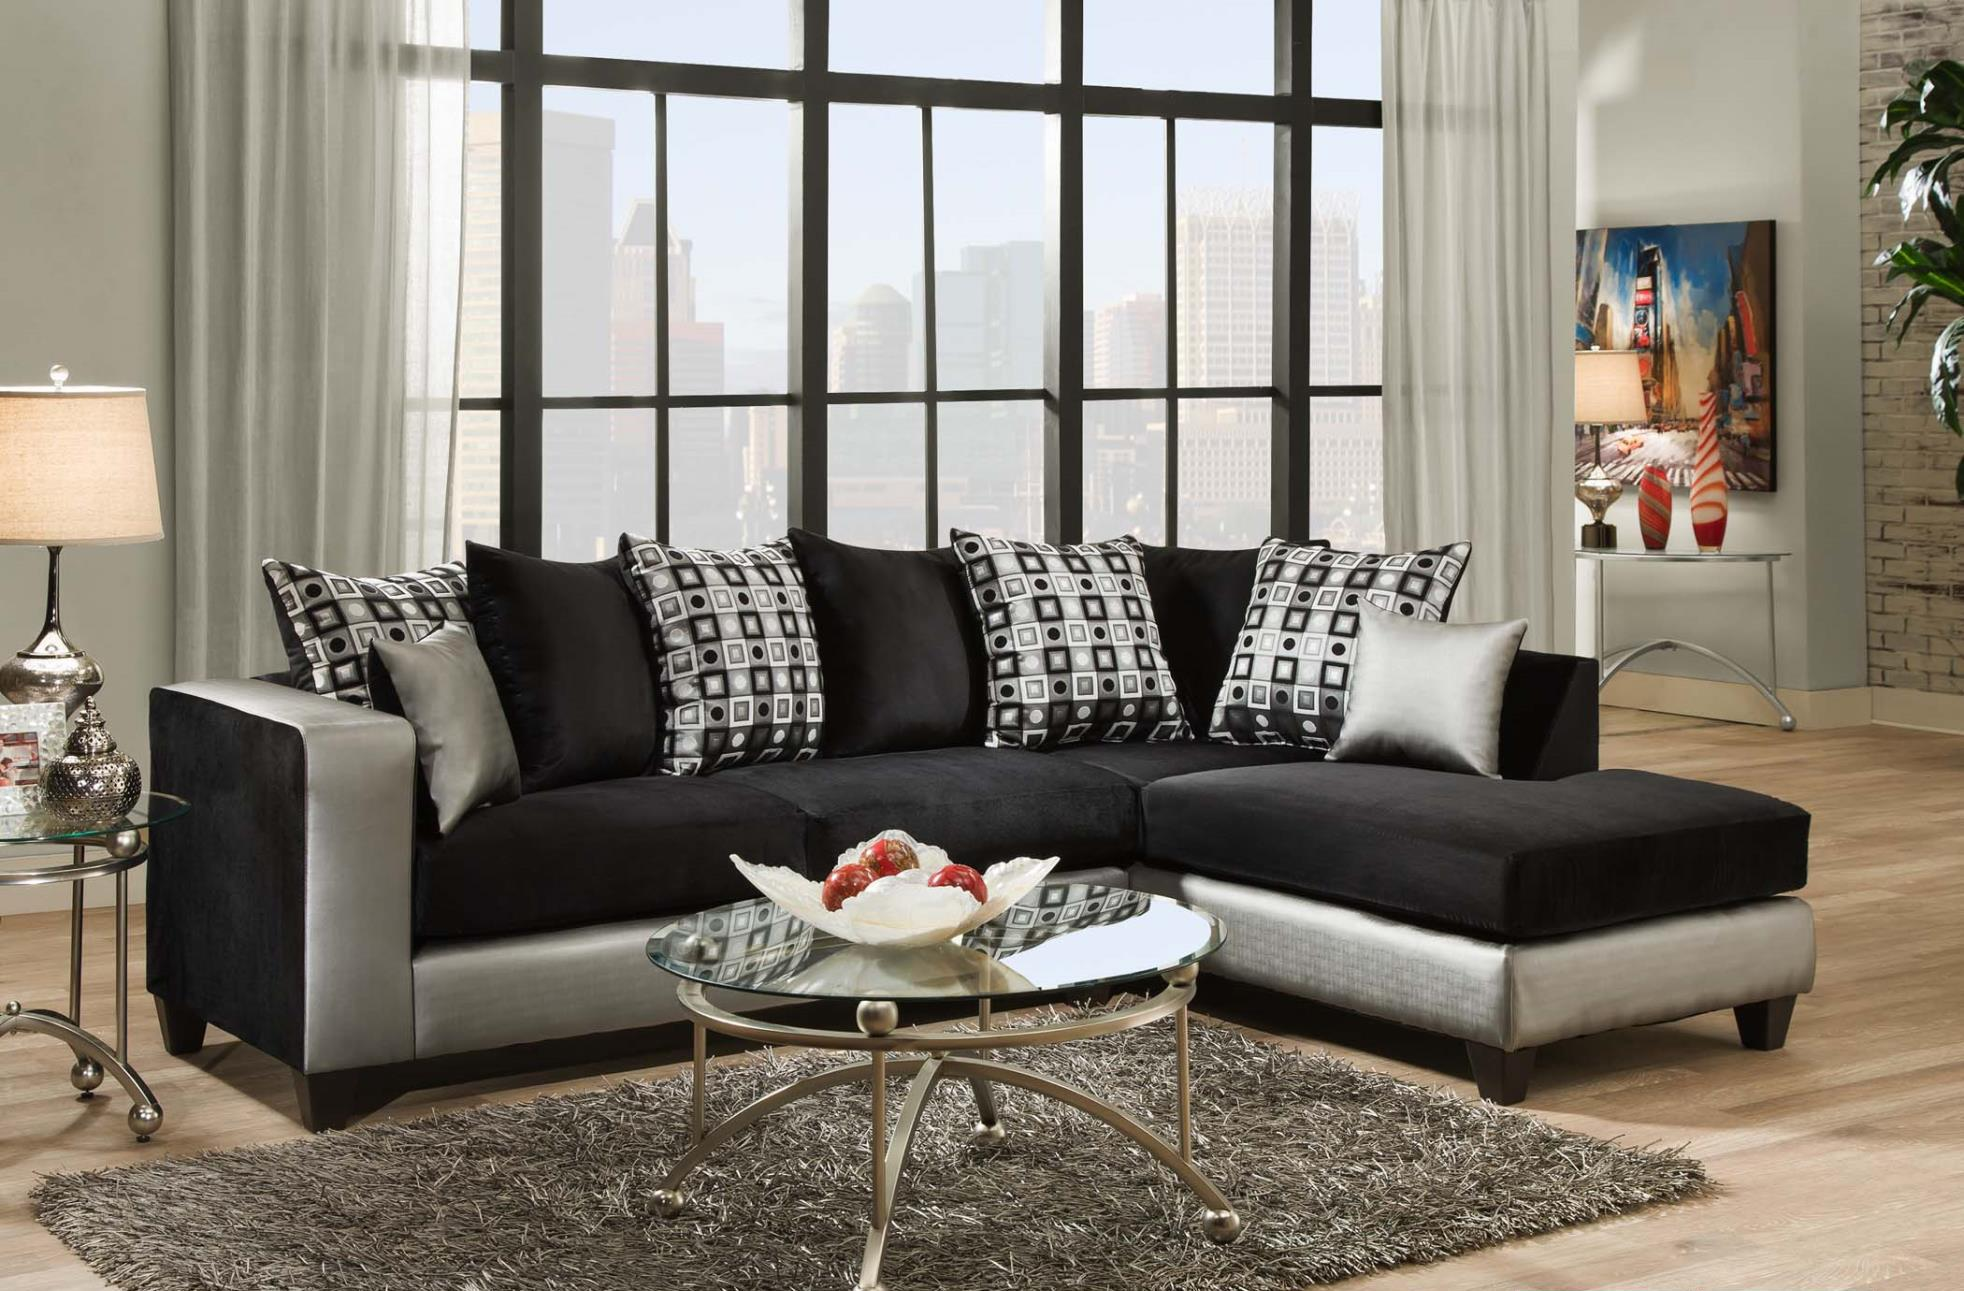 Del Sol Exclusive 4124 Sectional Sofa - Item Number: 4124-06S+06L